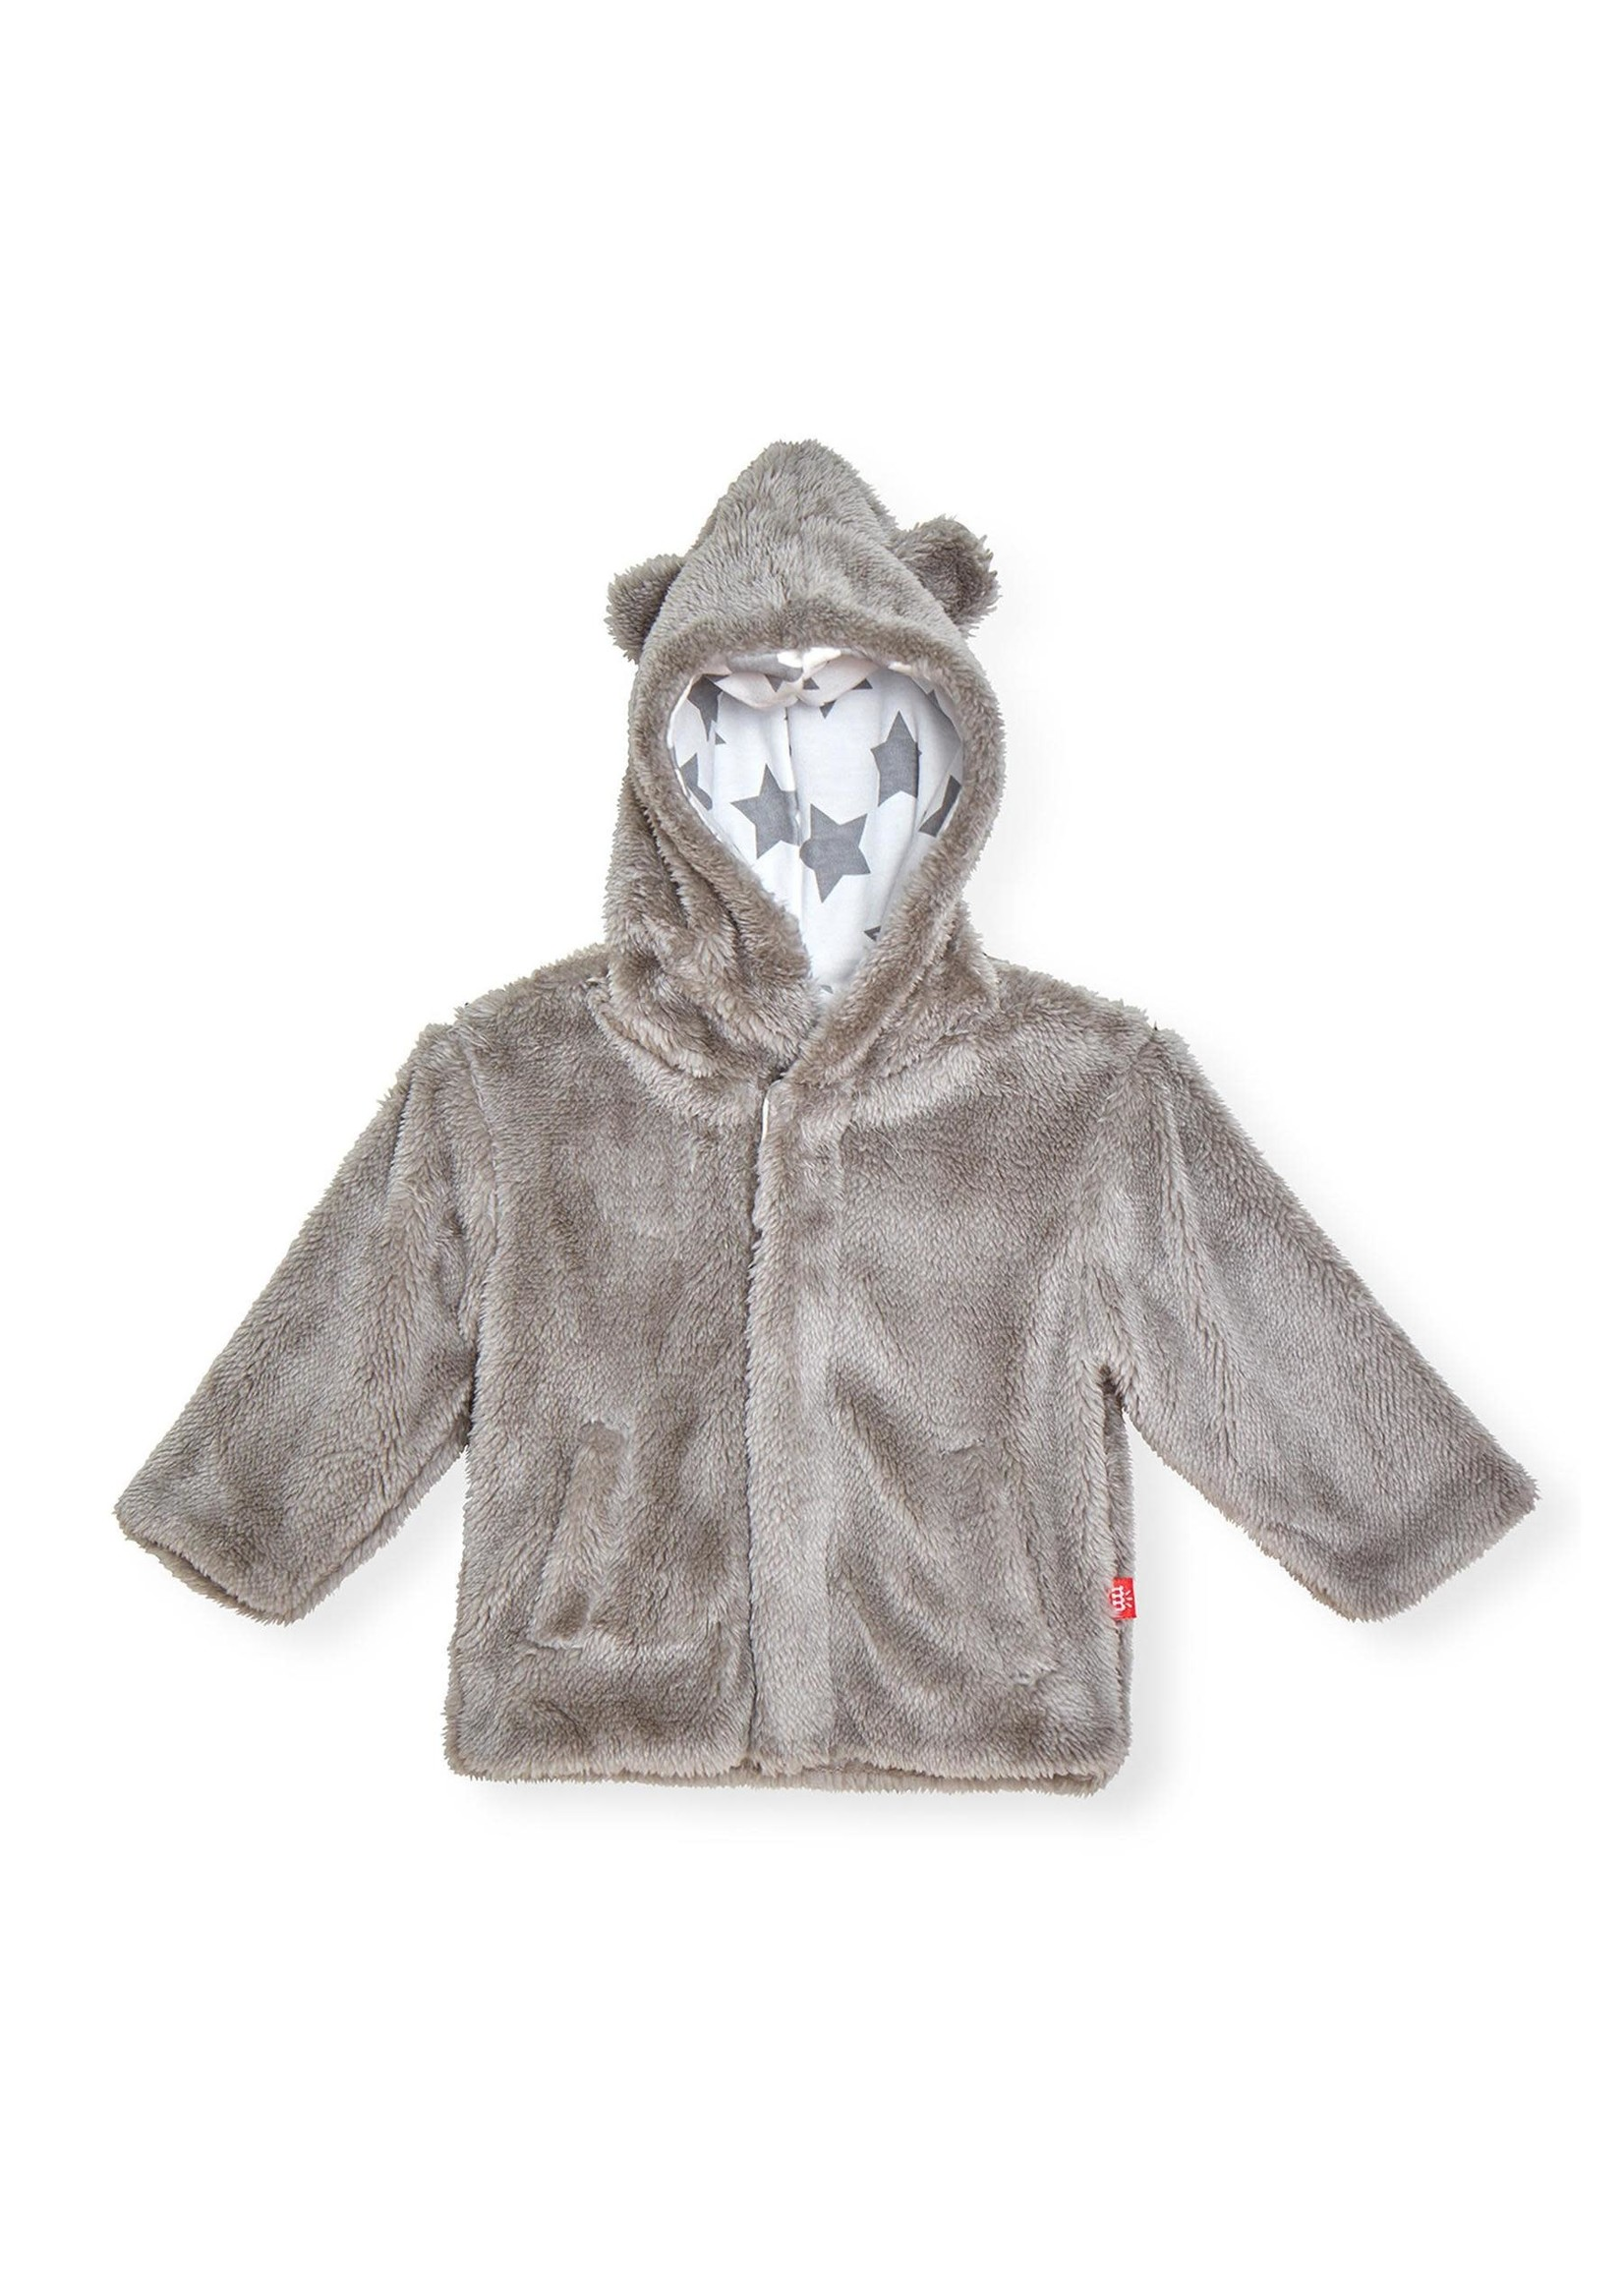 magnetic me Magnetic Me Star Drizzle Minky Jacket